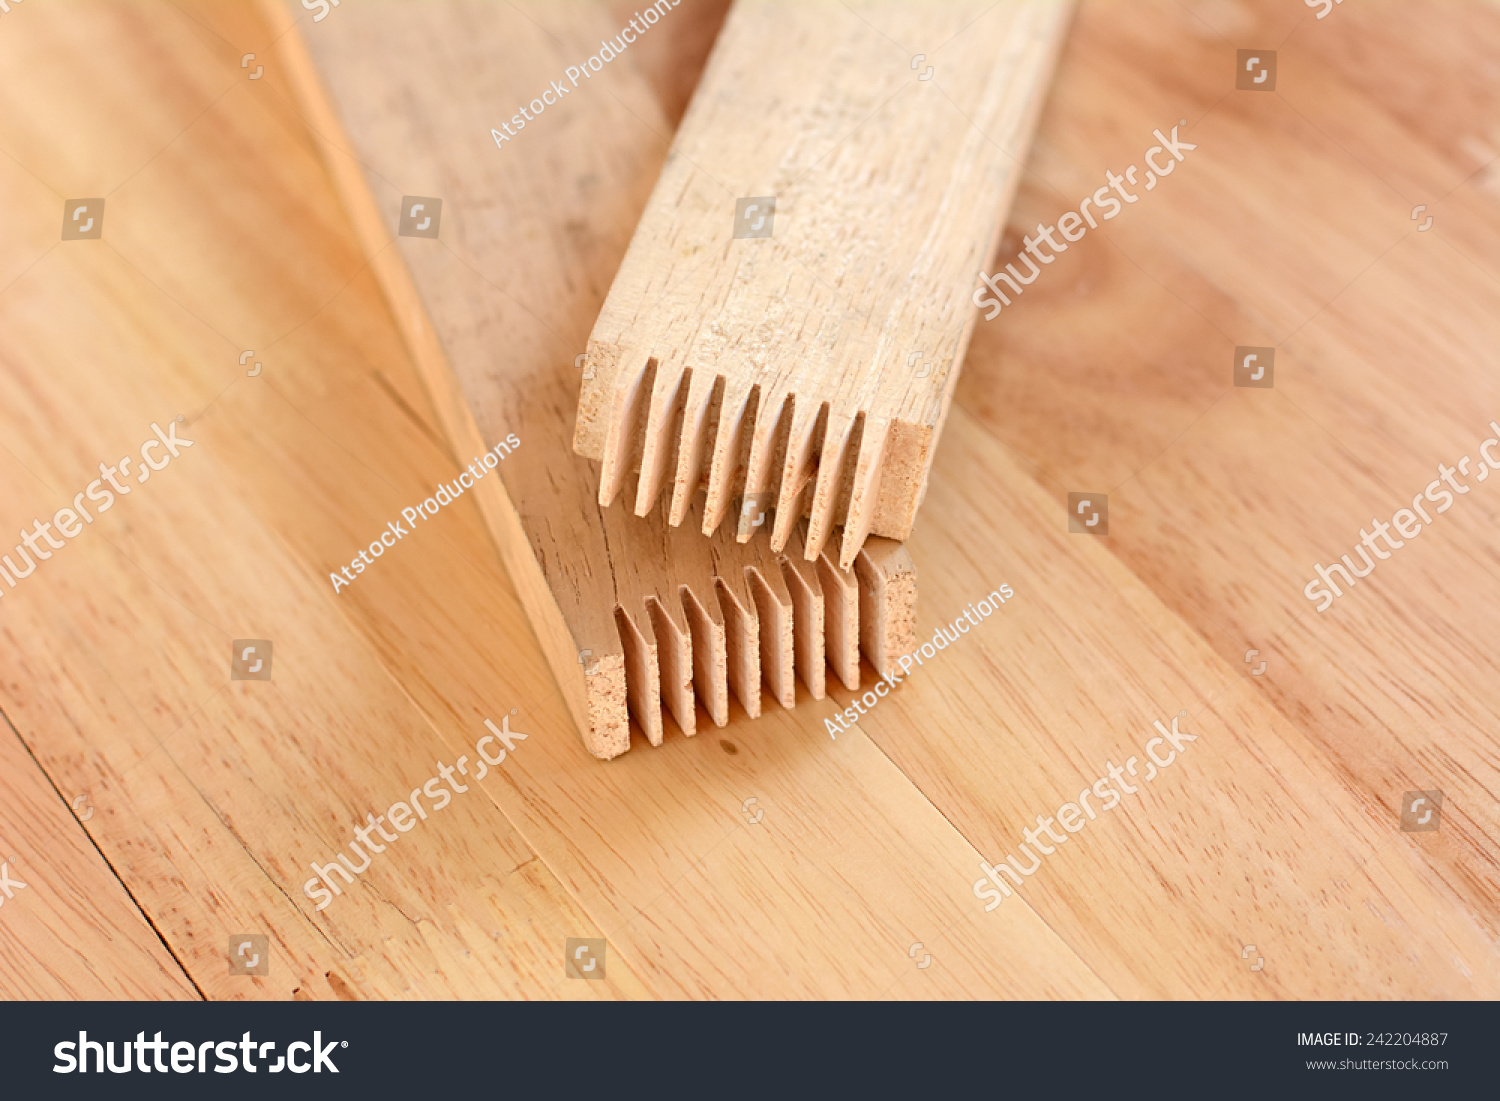 Finger Joint End Wood Sticks Or Stock Photo 242204887